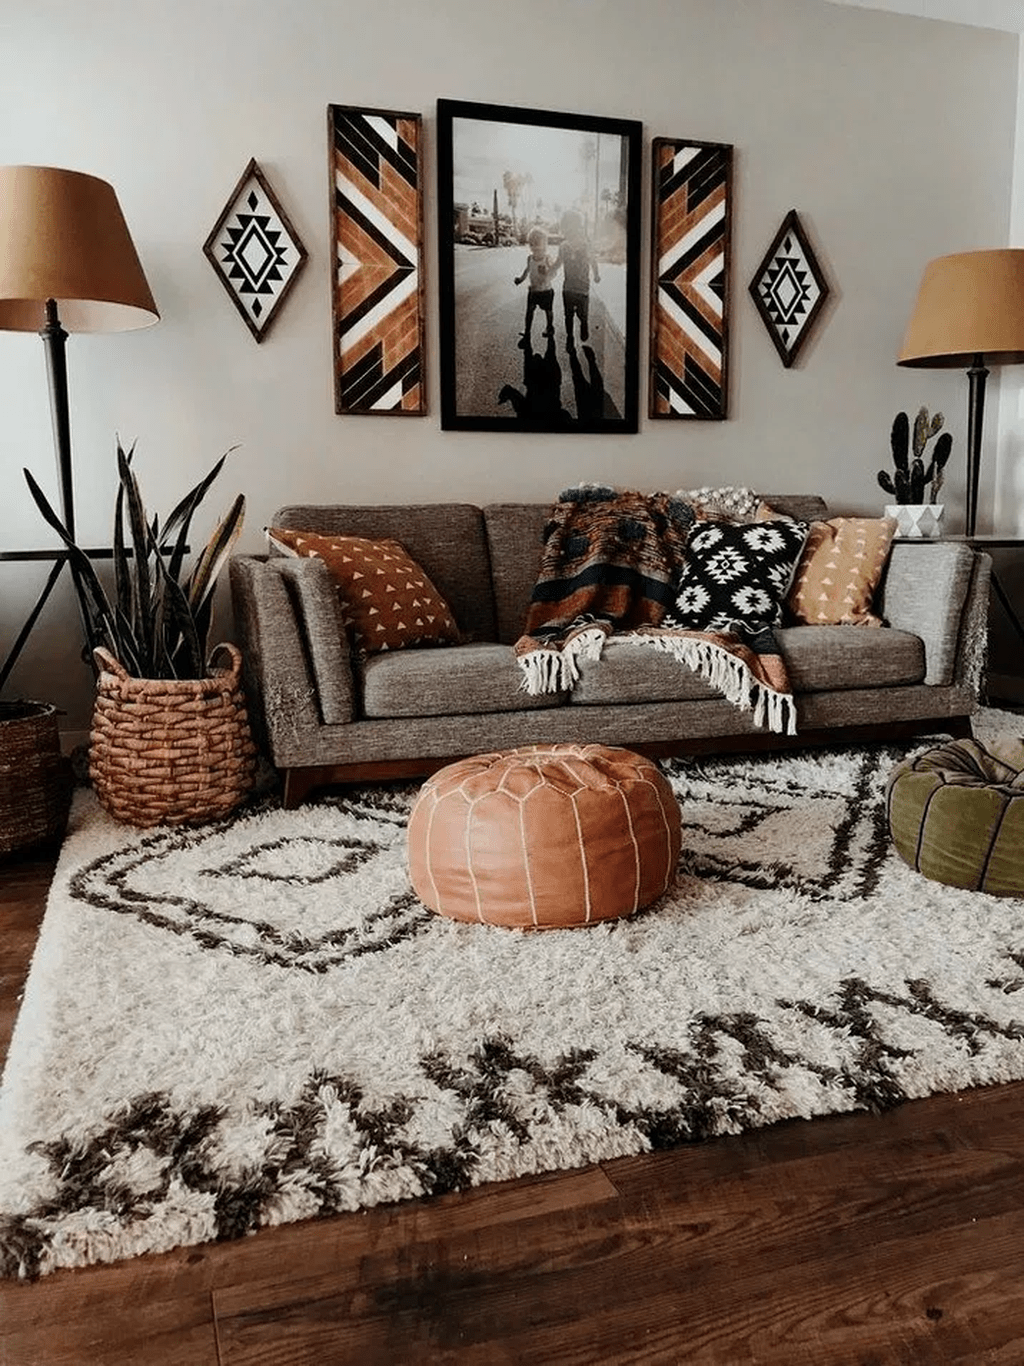 The Best Rustic Bohemian Living Room Decor Ideas 26